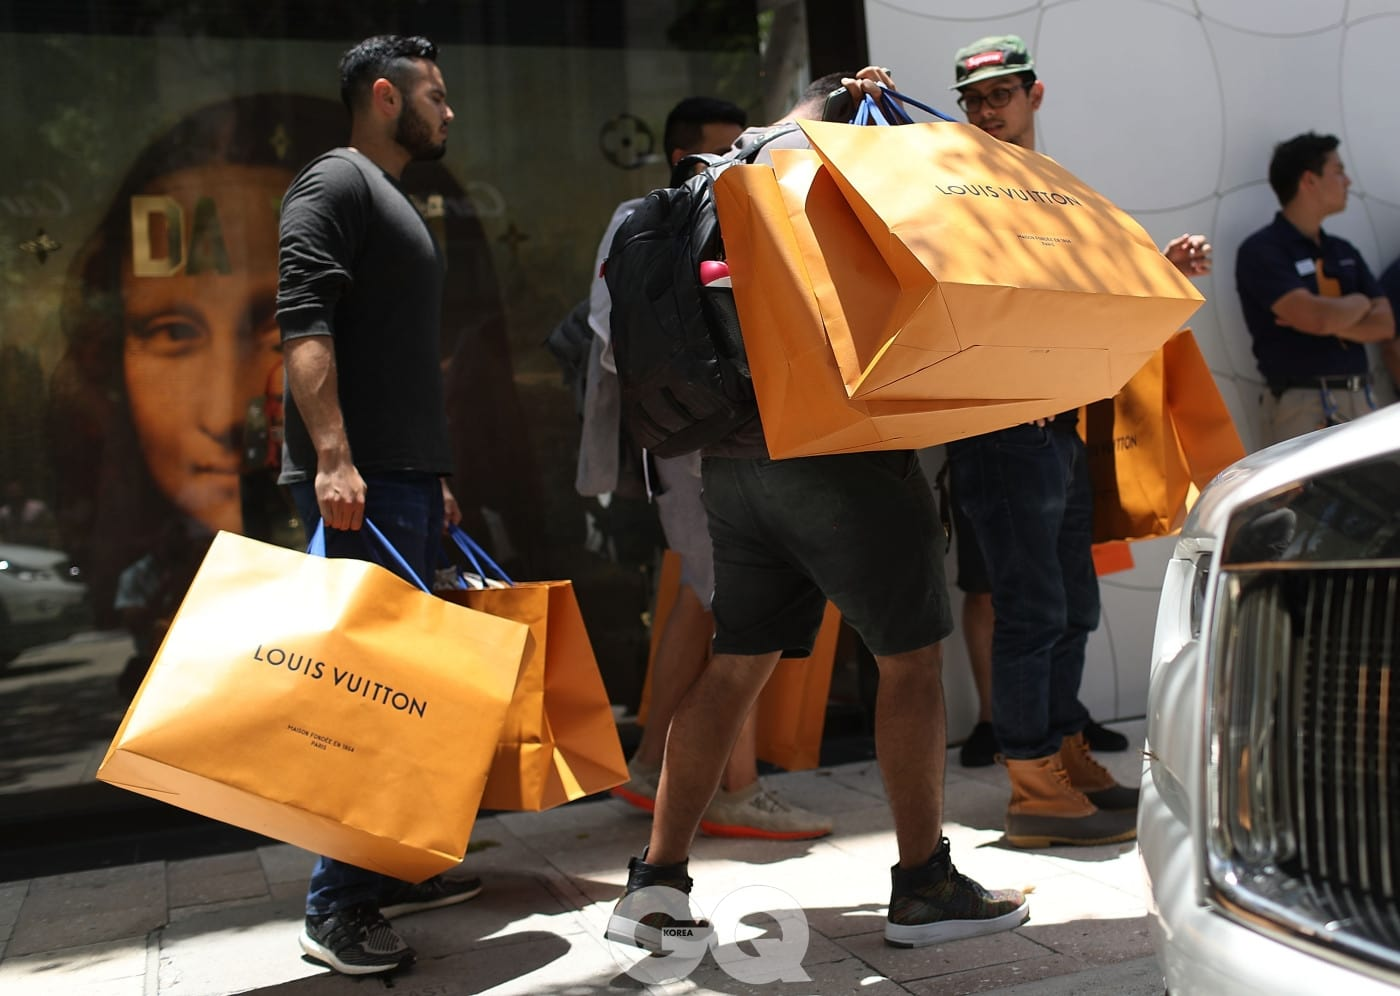 MIAMI, FL - JUNE 30:  Shoppers carry their Louis Vuitton bags from the store where they were selling limited edition supreme and Louis Vuitton collaboration items on June 30, 2017 in Miami, Florida.  The Louis Vuitton X Supreme collection pre-launched today in the American markets of Miami and Los Angeles with other pop-up locations worldwide that included Sydney, Tokyo, Seoul, Beijing, Paris and London.  (Photo by Joe Raedle/Getty Images)